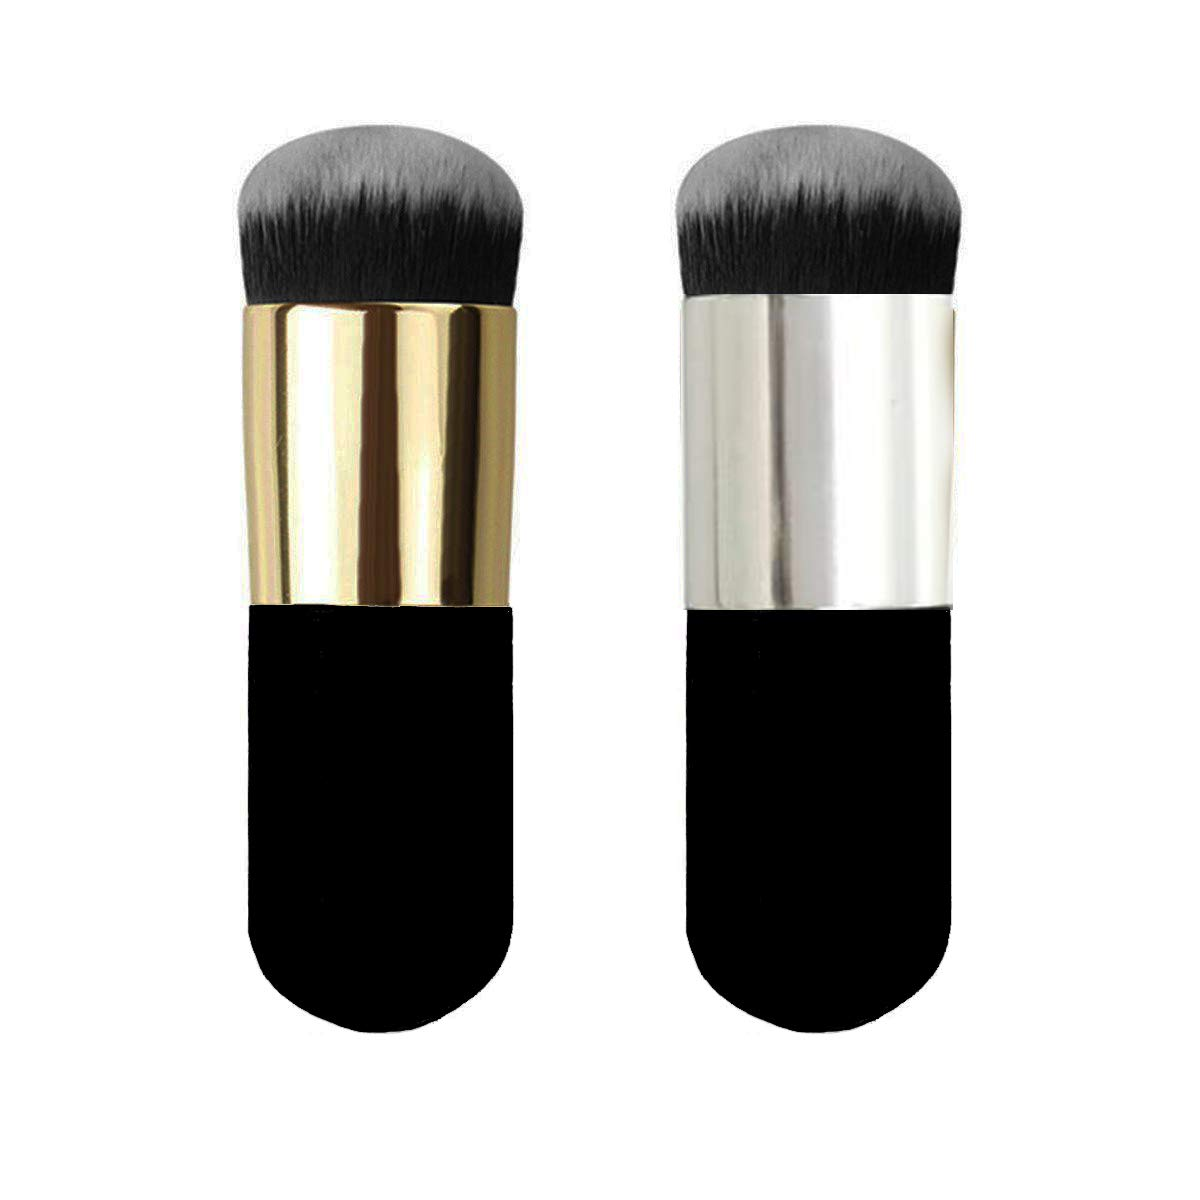 2 Pieces Travel Kabuki Foundation Brush, Suit For Blending Liquid, Cream or Flawless Powder Cosmetics, (Golden & Silver)